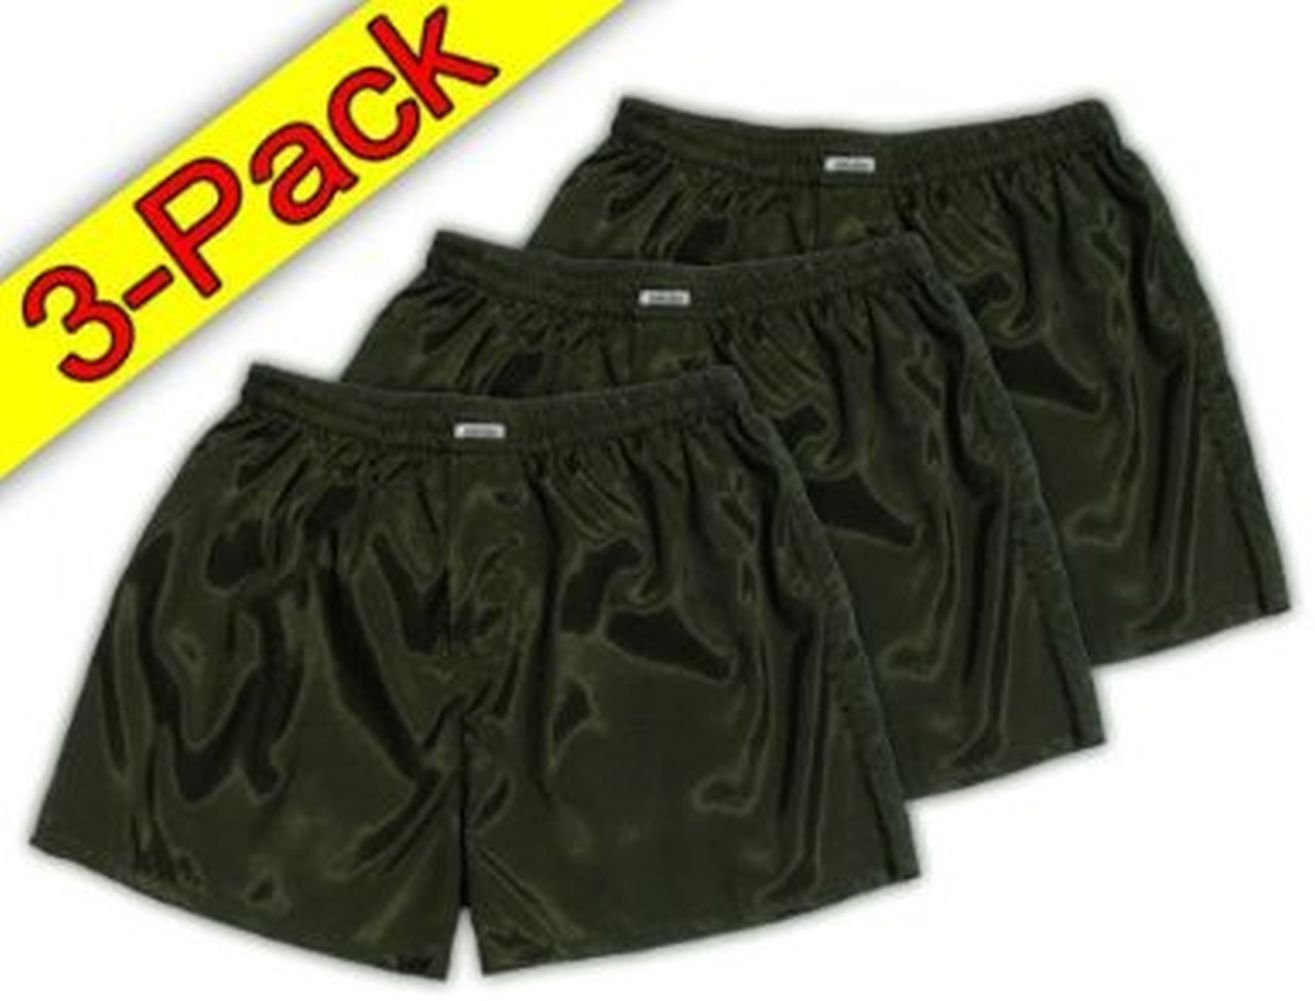 (XXL) 3-Pack Darkgreen Boxer Shorts Underwear Men Sleepwear Satin